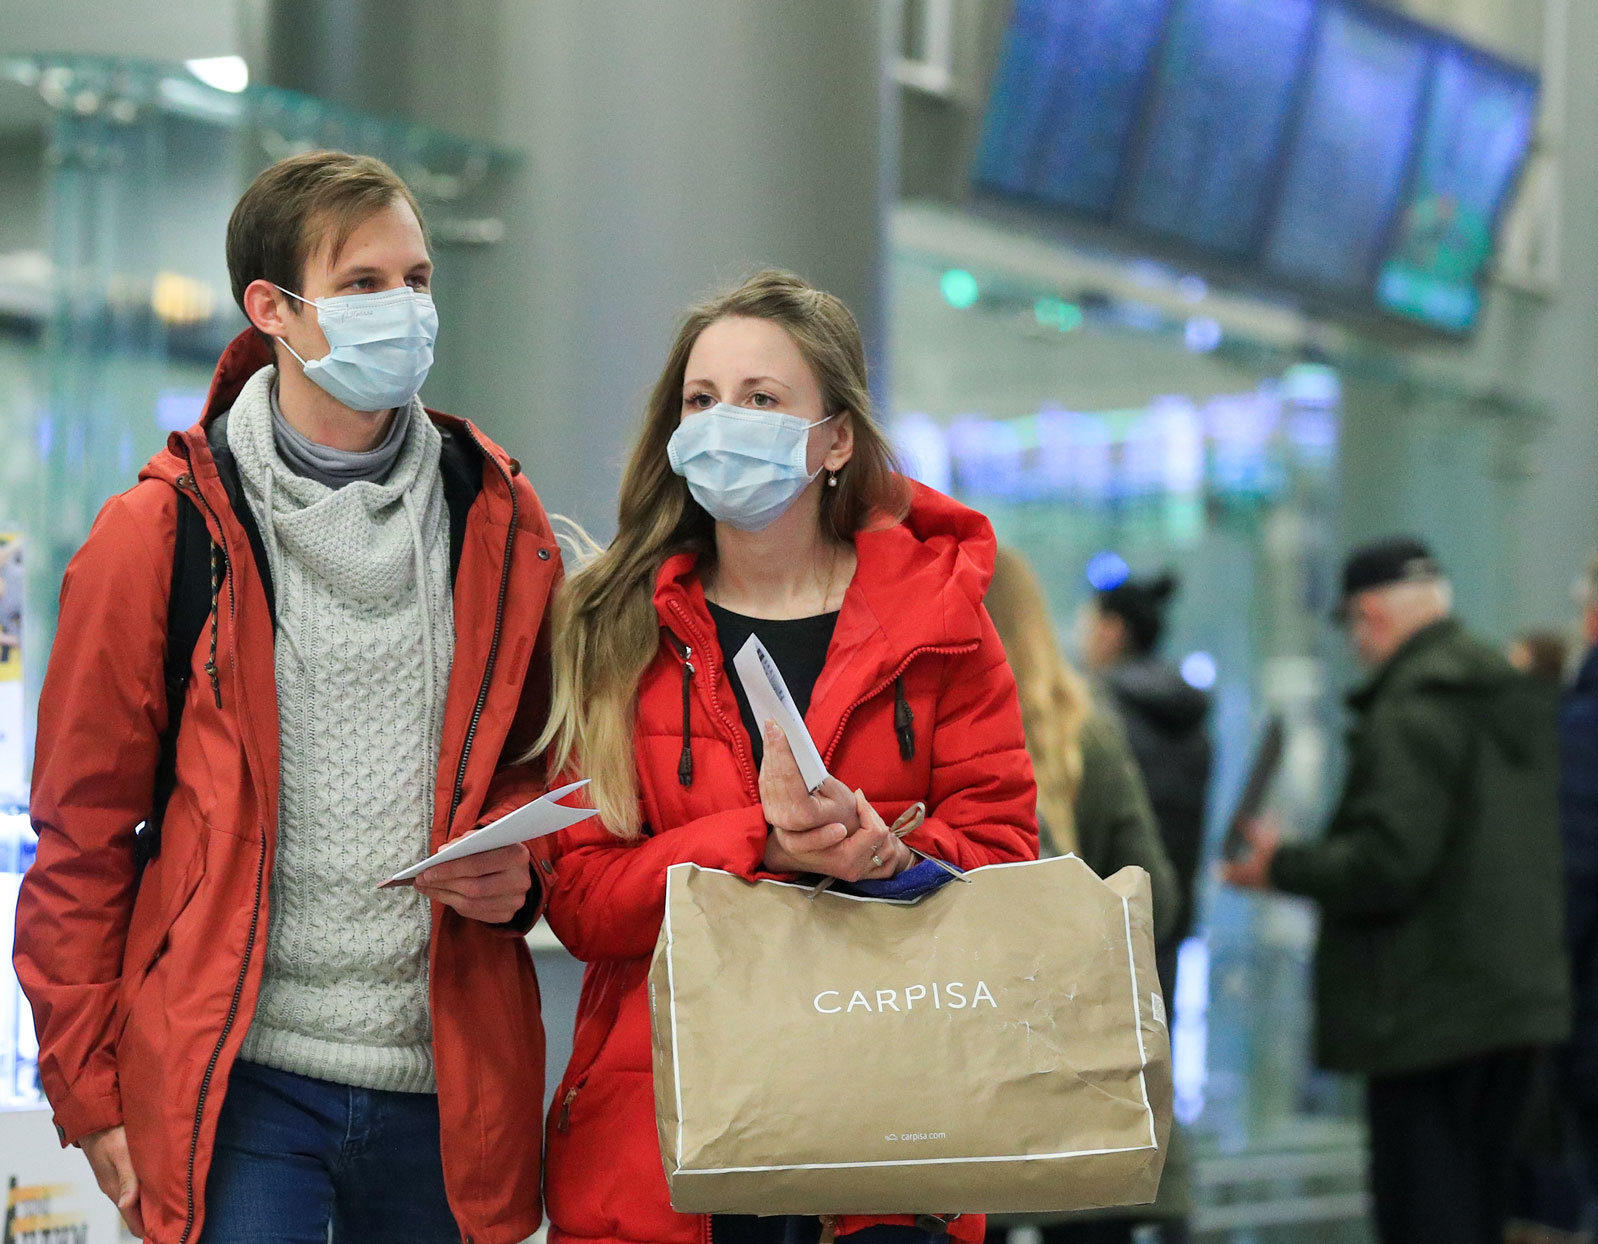 Shoppers wearing surgical masks